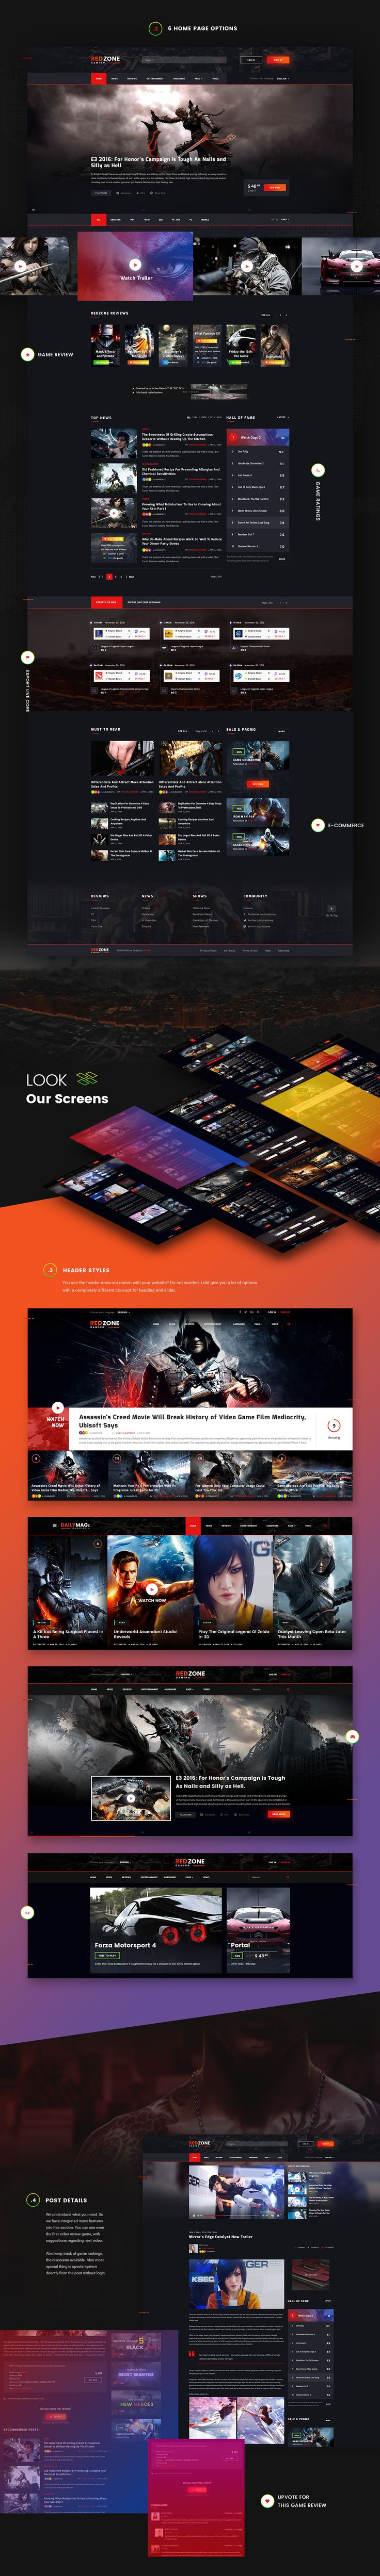 DailyMagz is modern template has been designed for Newspaper, Magazine, Blog. The design is made of creativity & imagination so it can provide the actual useful section to its users. This is just part of the great design we are doing on DailyMagz